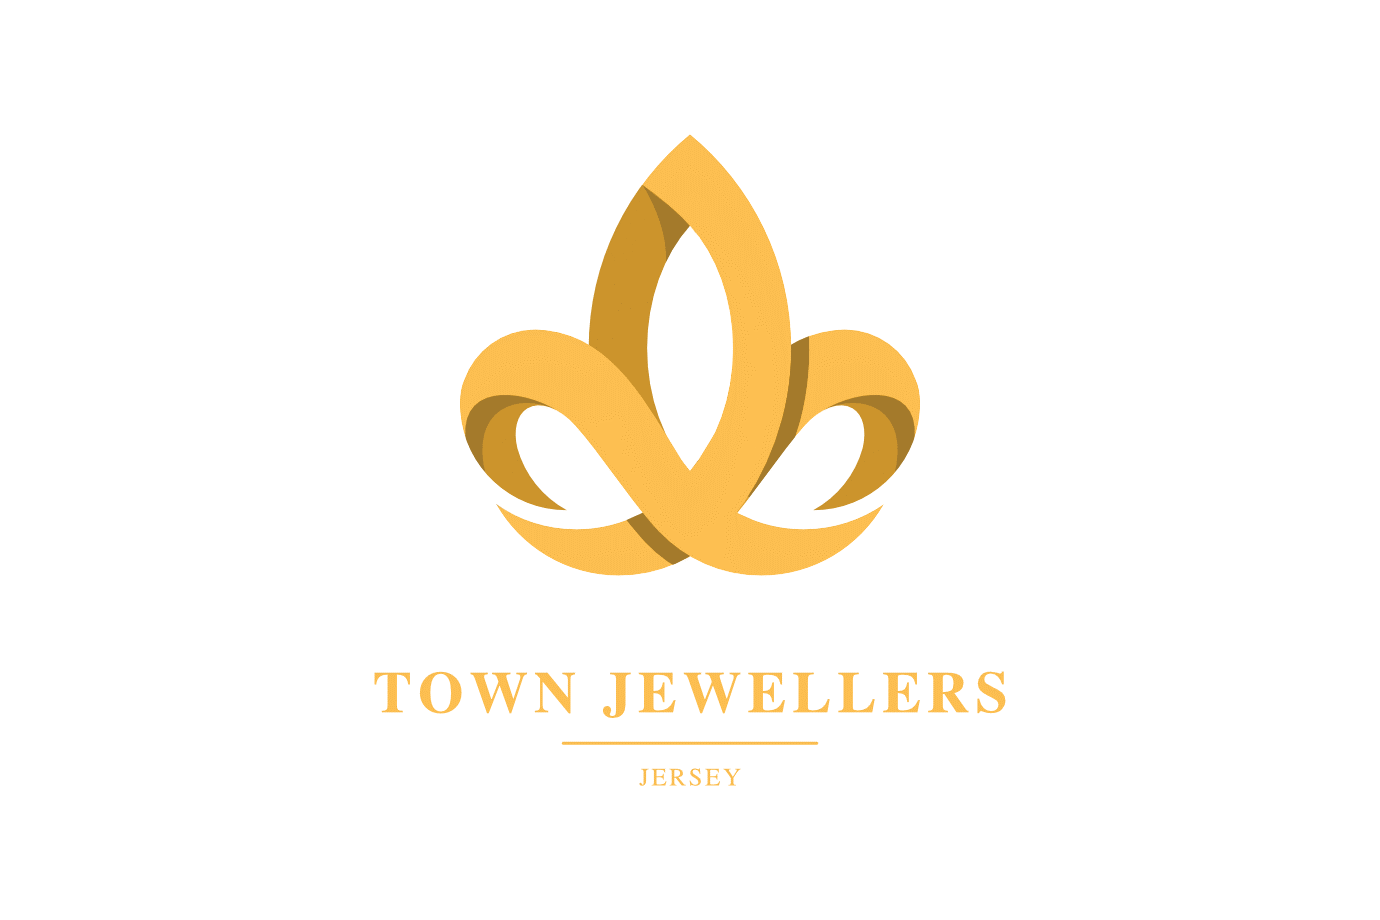 Town Jewellers